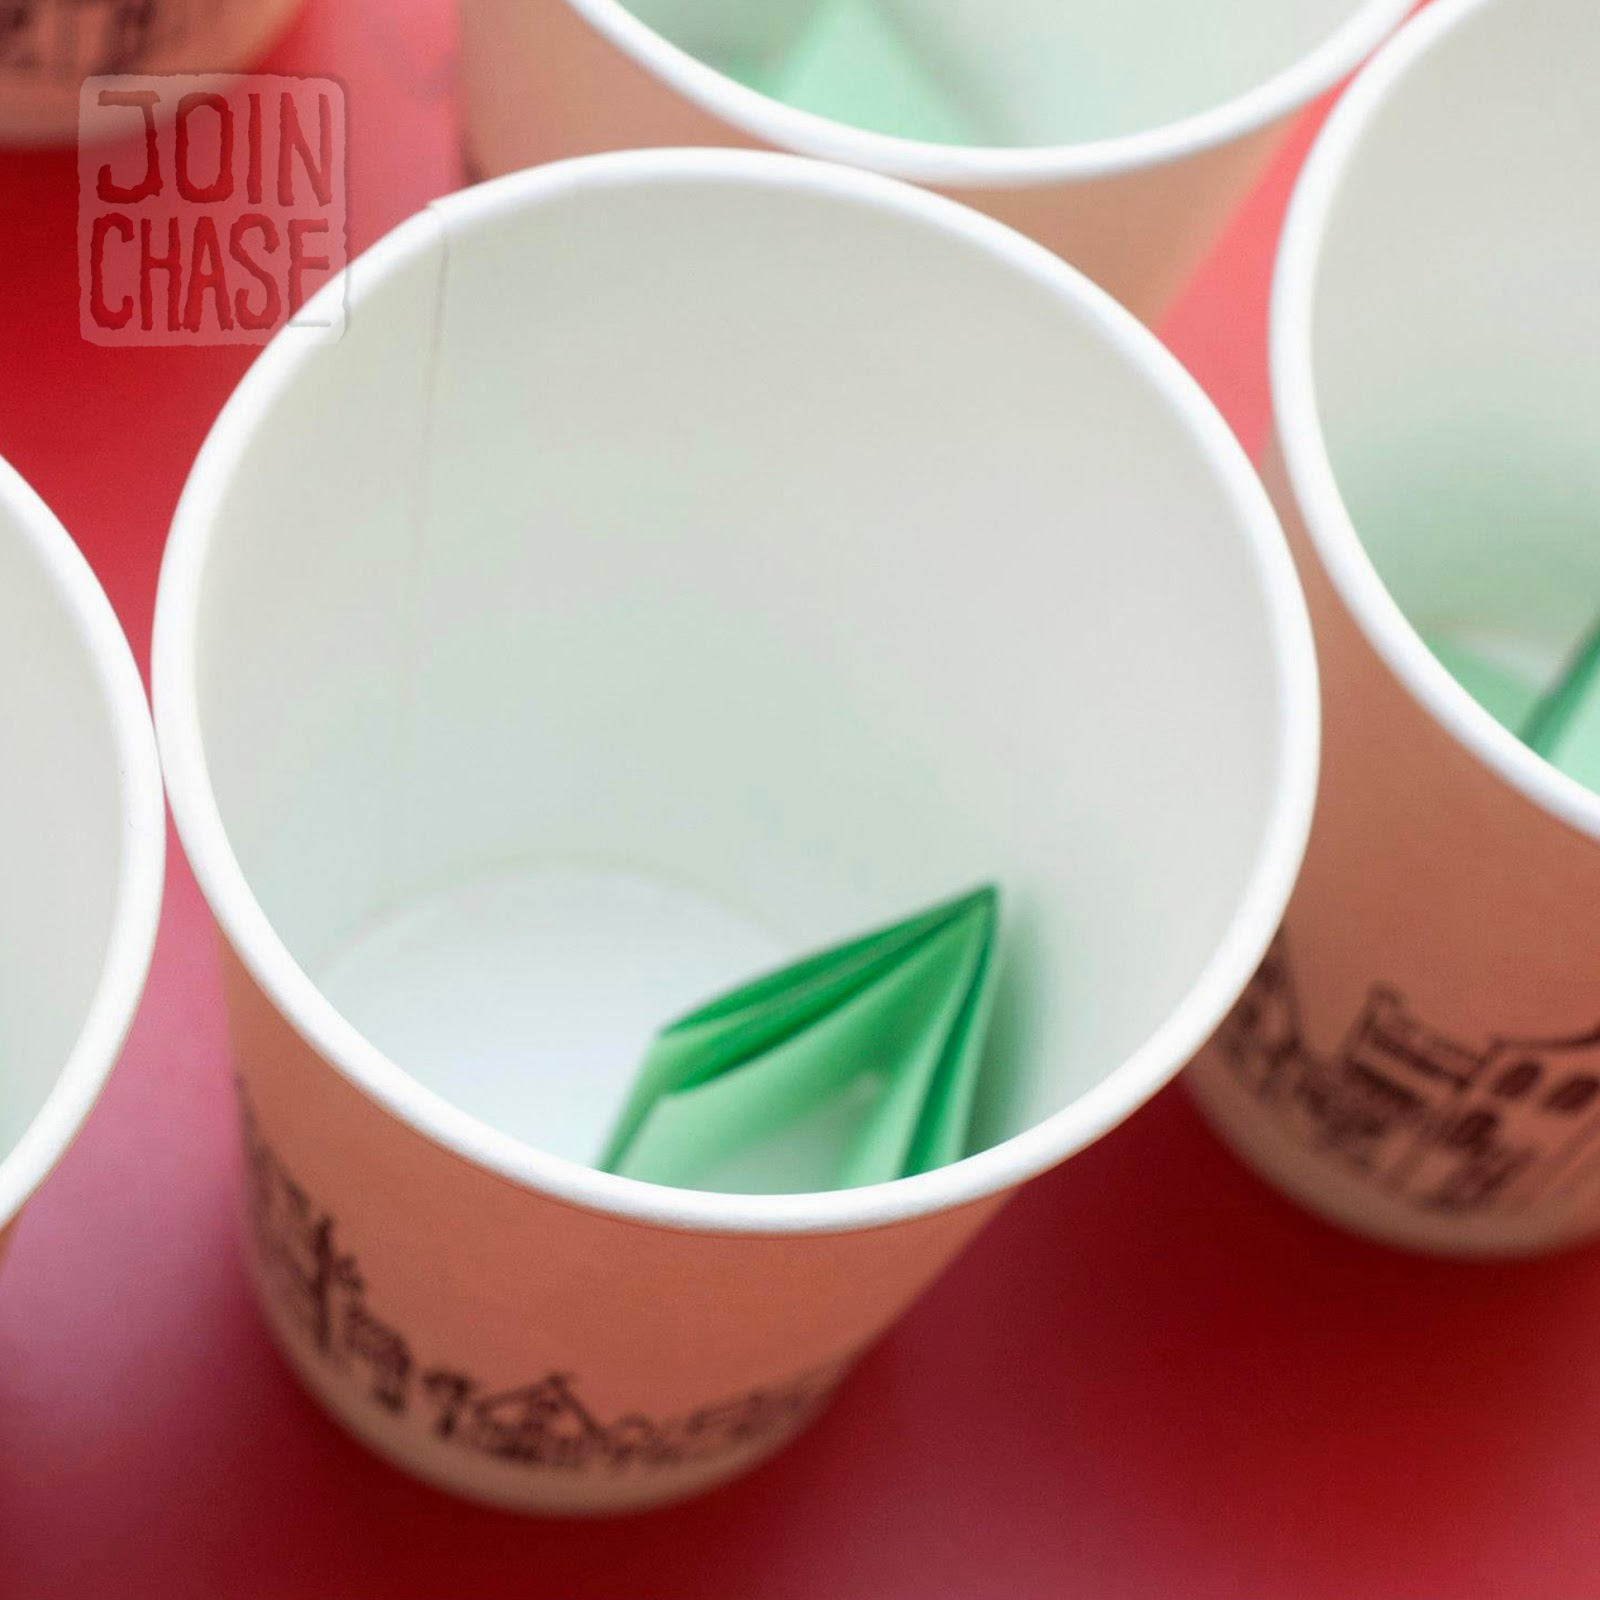 English expressions placed inside cups to play English Pong in South Korea.